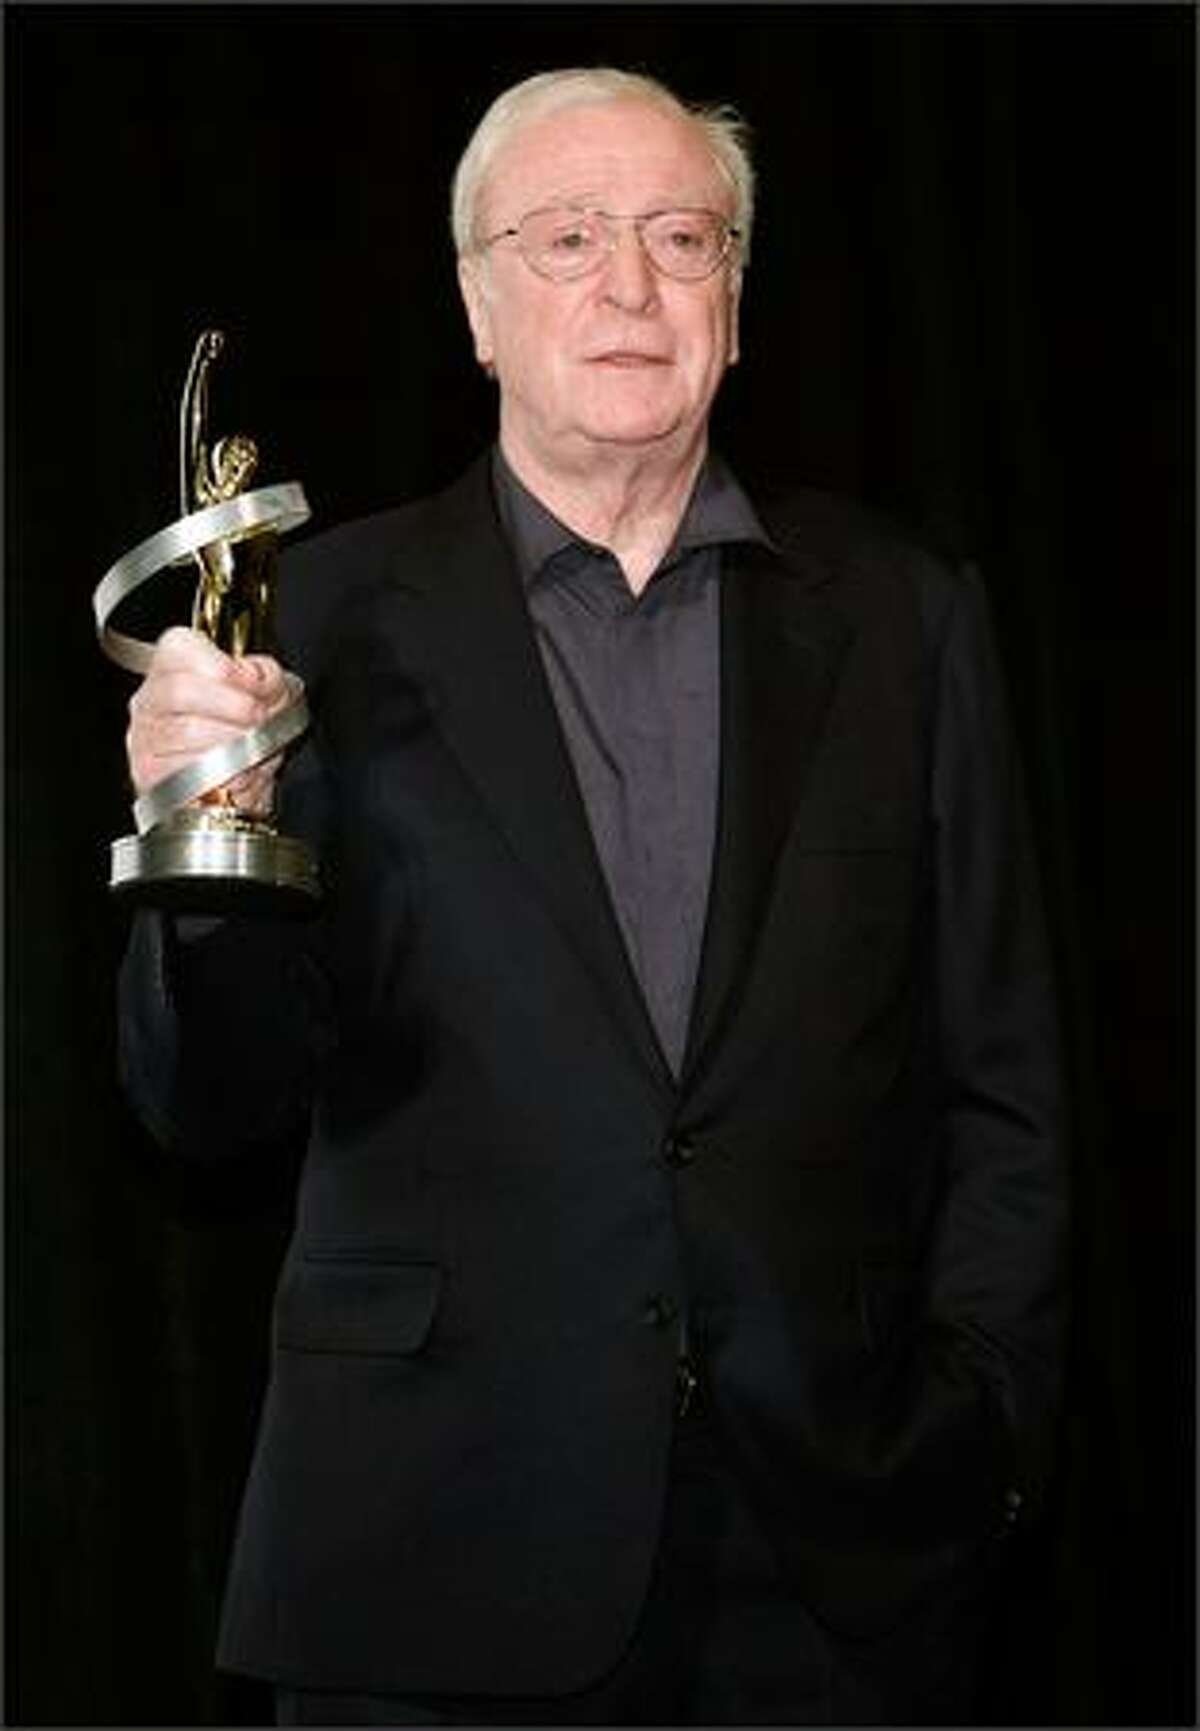 Actor Michael Caine, recipient of the Lifetime Achievement Award, attends the 2009 ShoWest convention final night banquet and awards ceremony.